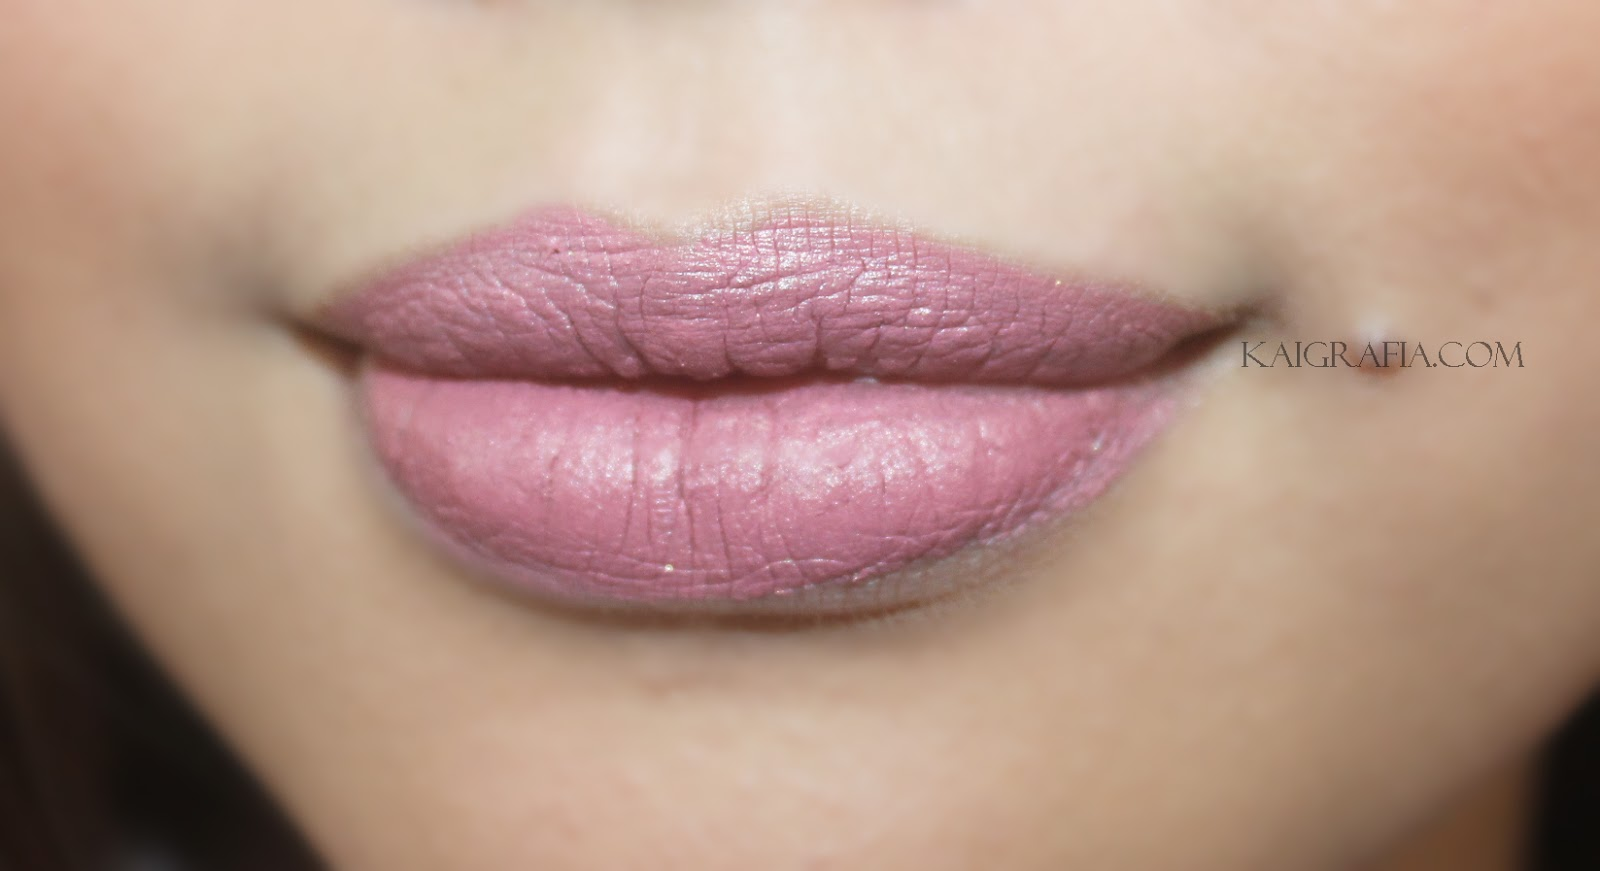 party queen matte and creamy lipstick #09